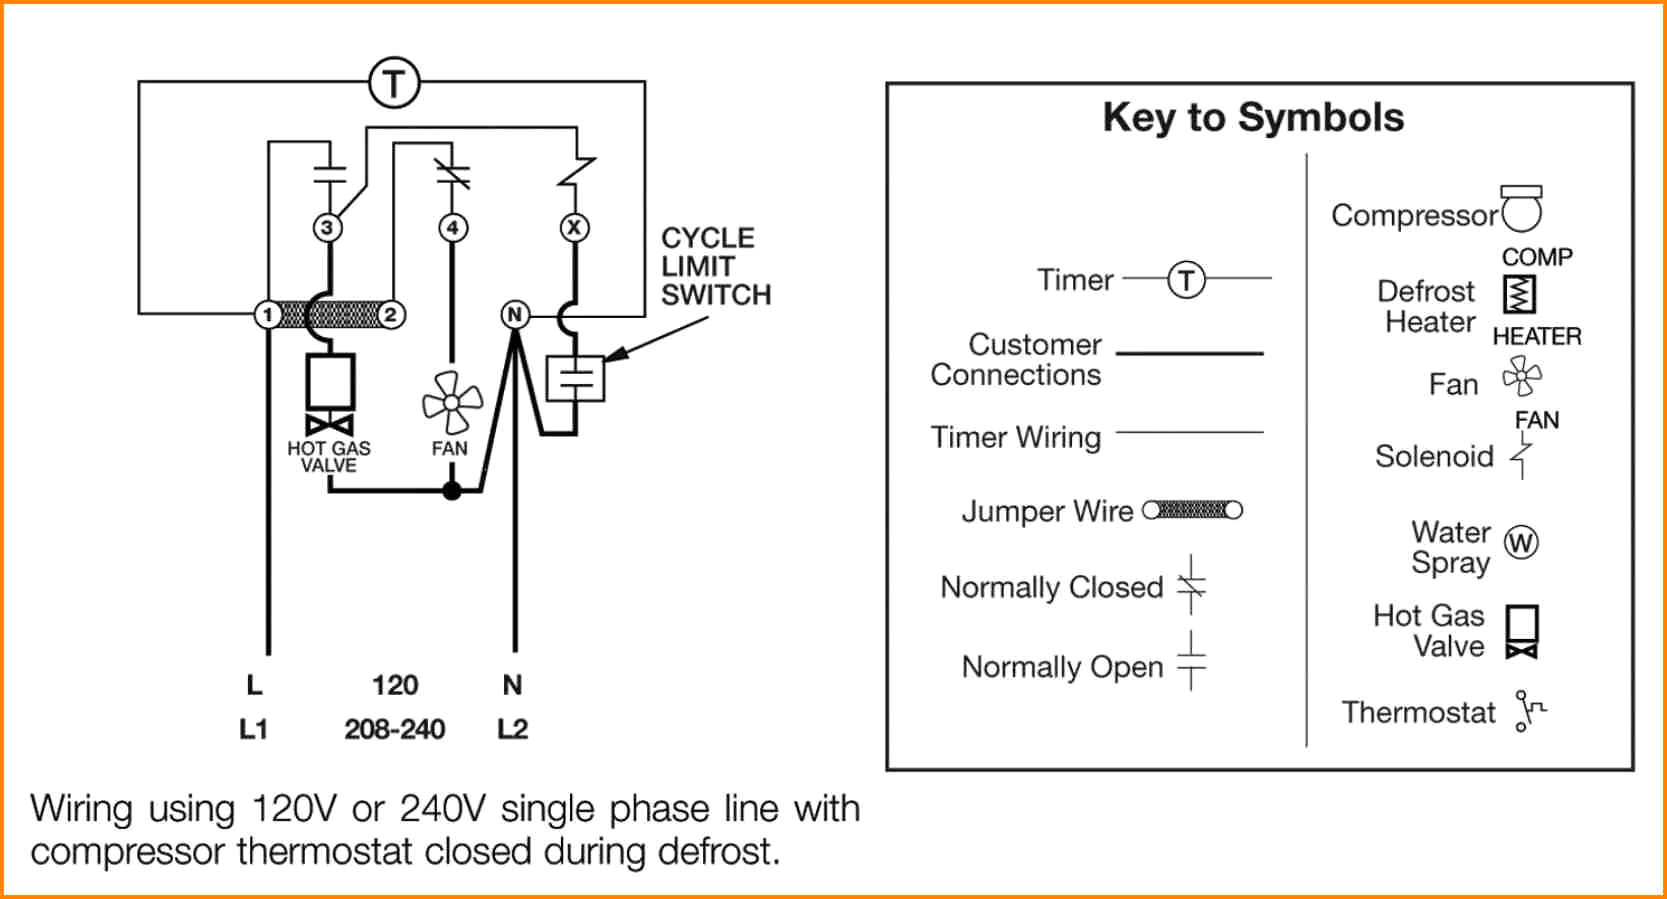 collection of paragon defrost timer 8145 20 wiring diagram ... refrigerator defrost timer wiring diagram #5